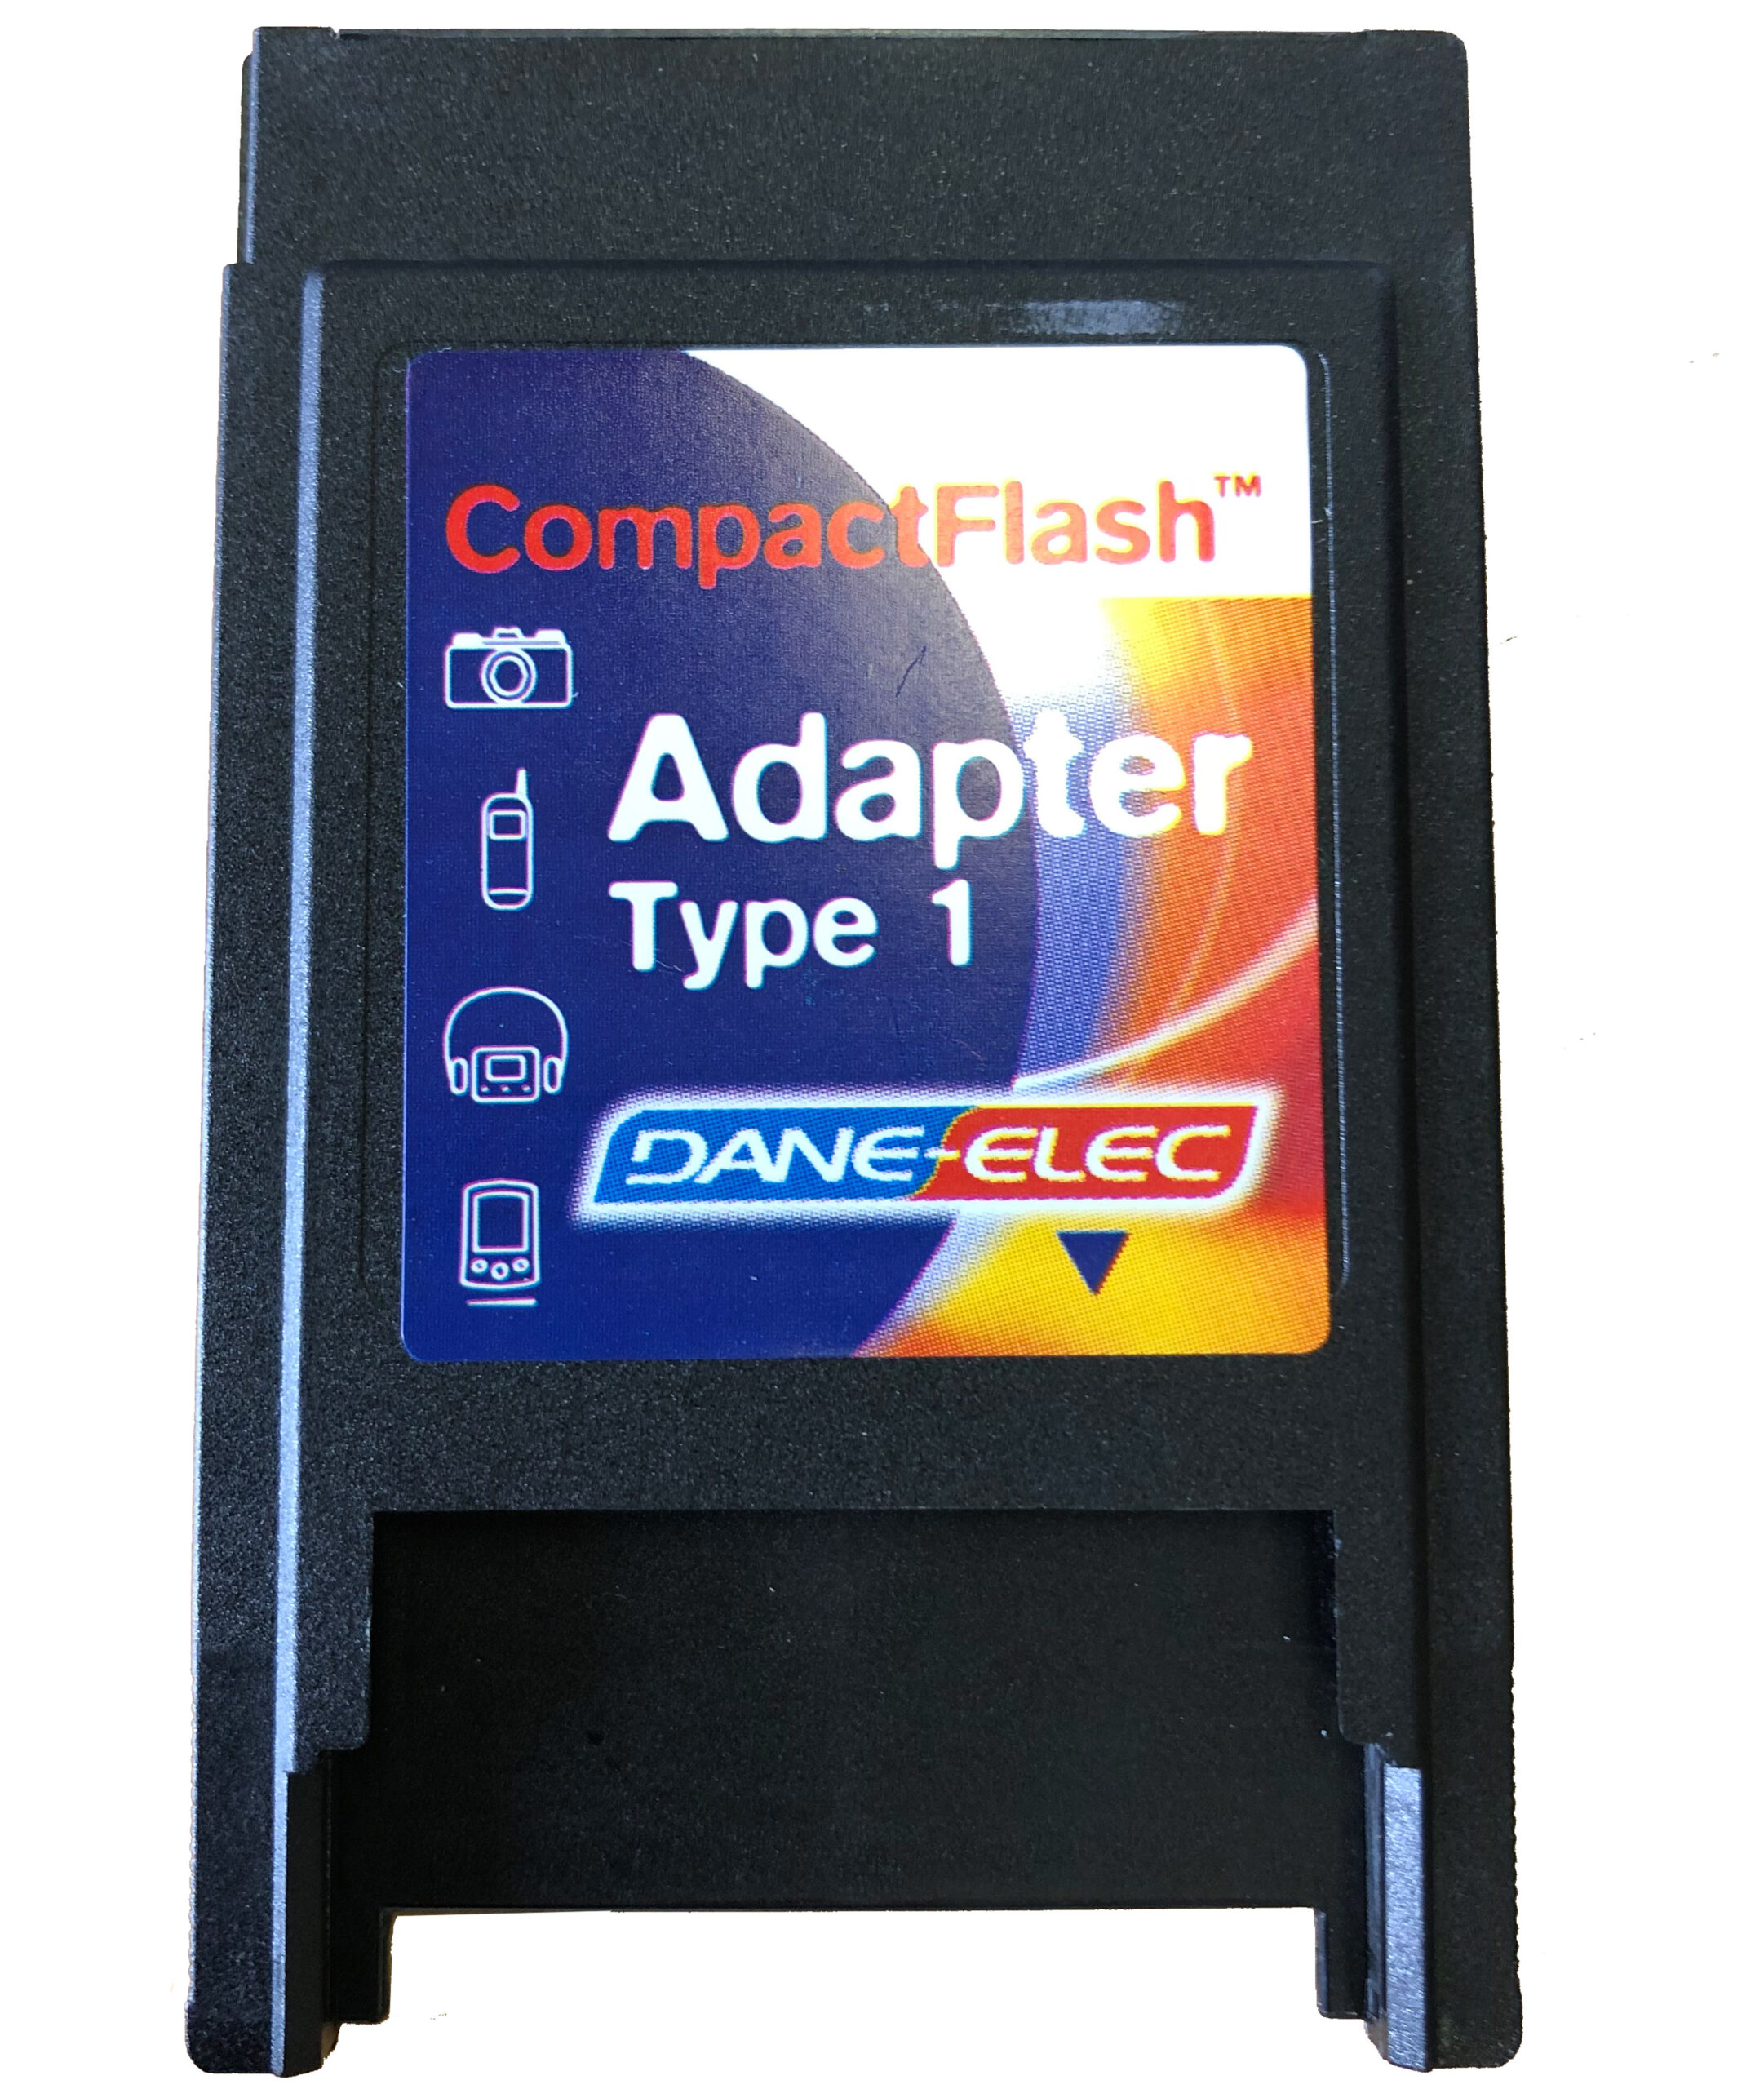 DANE-ELEC PC Card adapter Type 1